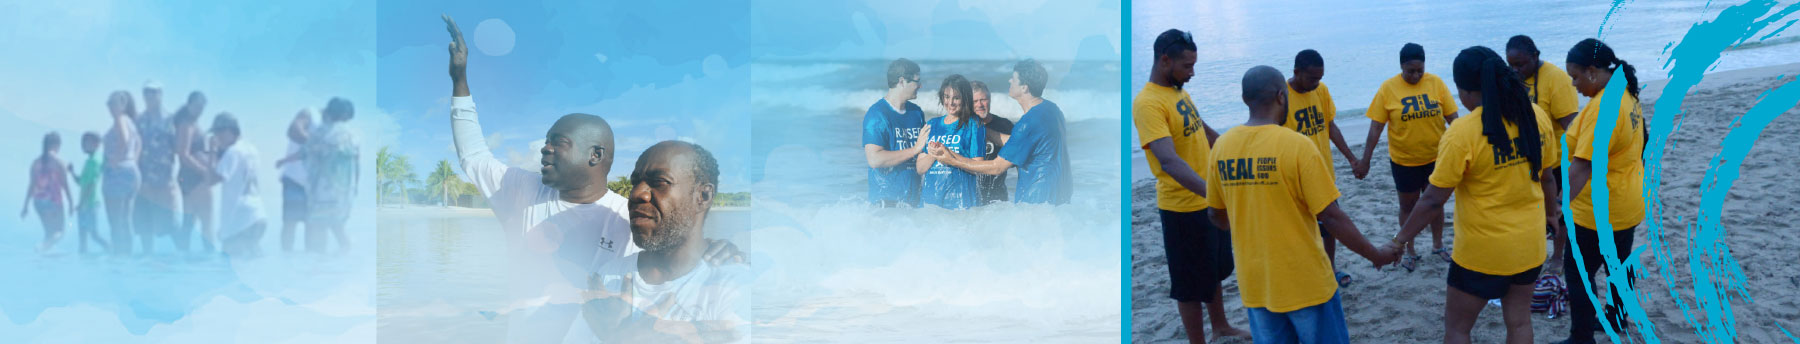 Acts 2:41 Sunday • Baptizing Coast-to-Coast • Florida Beach Baptism Day